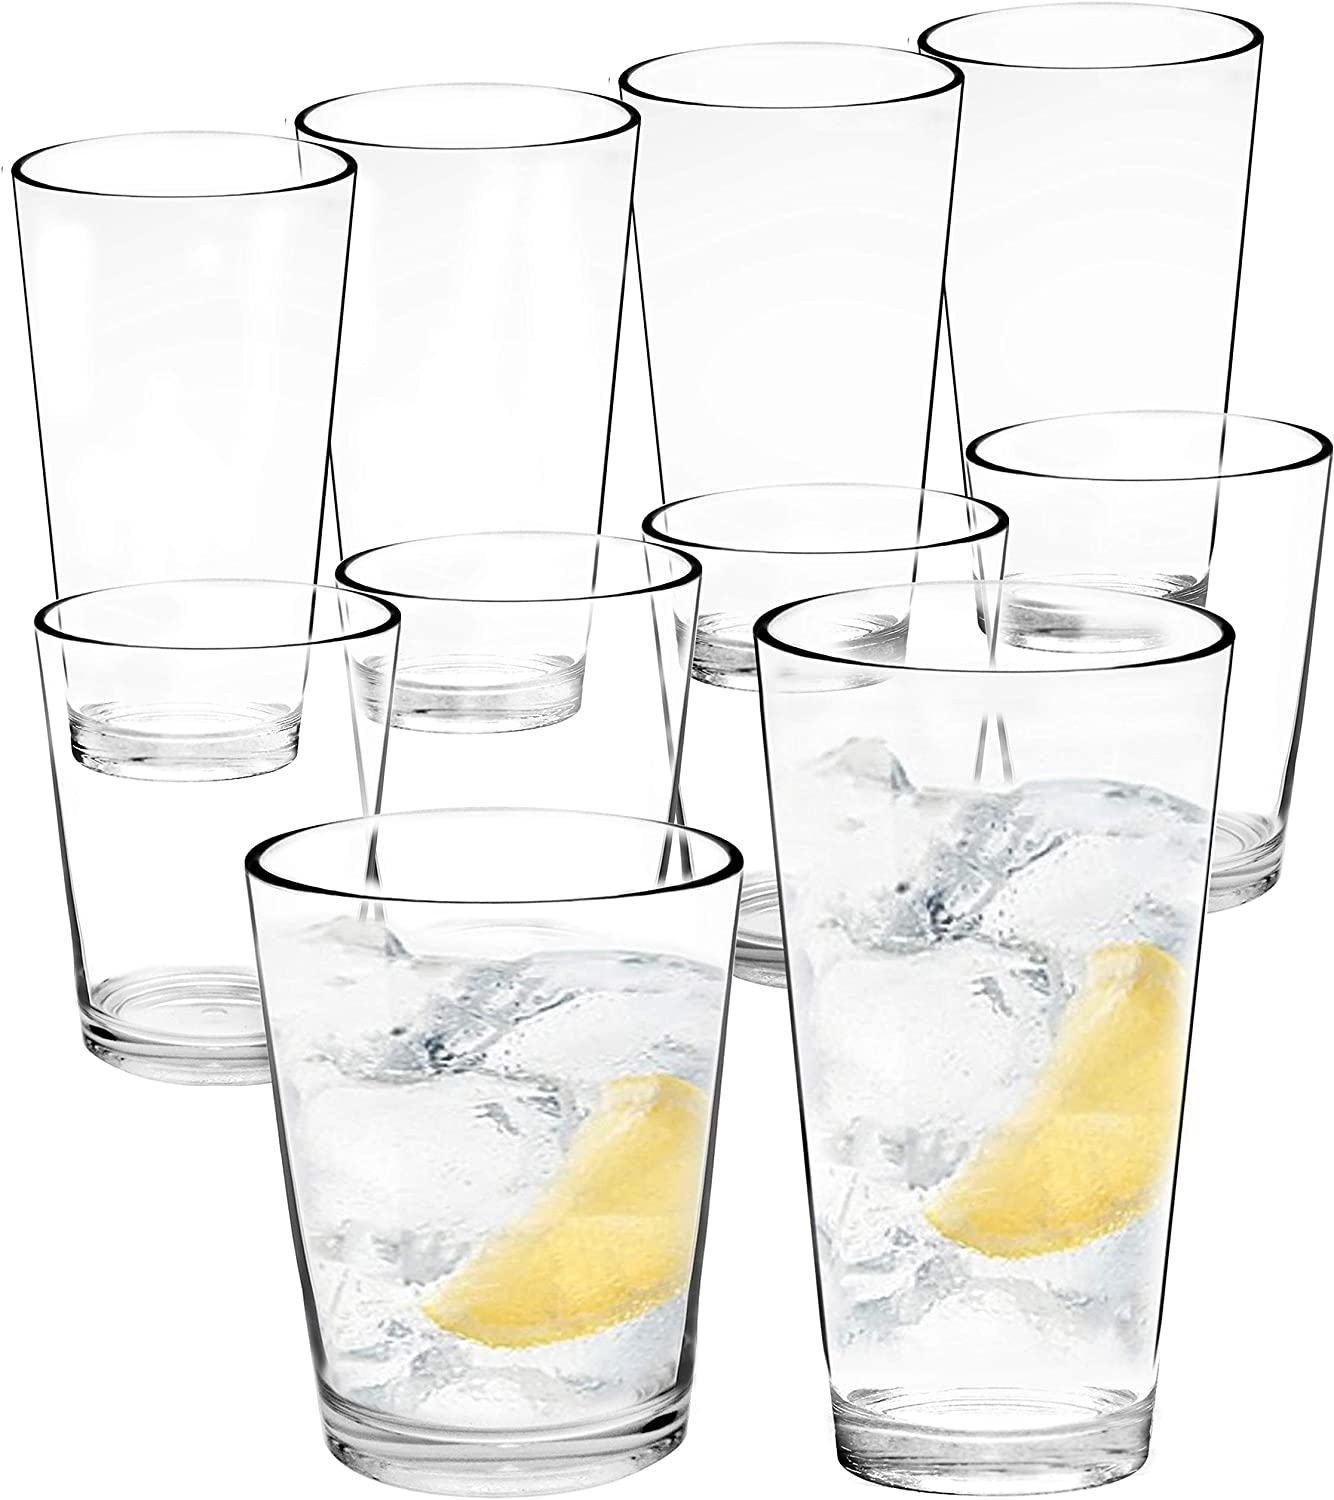 Youngever 8 Pcs Bistro Plastic Drinking Tumblers, Plastic Glasses, Reusable Plastic Cups, Unbreakable Glasses, Drinking Glasses (16 Ounce & 22 Ounce)